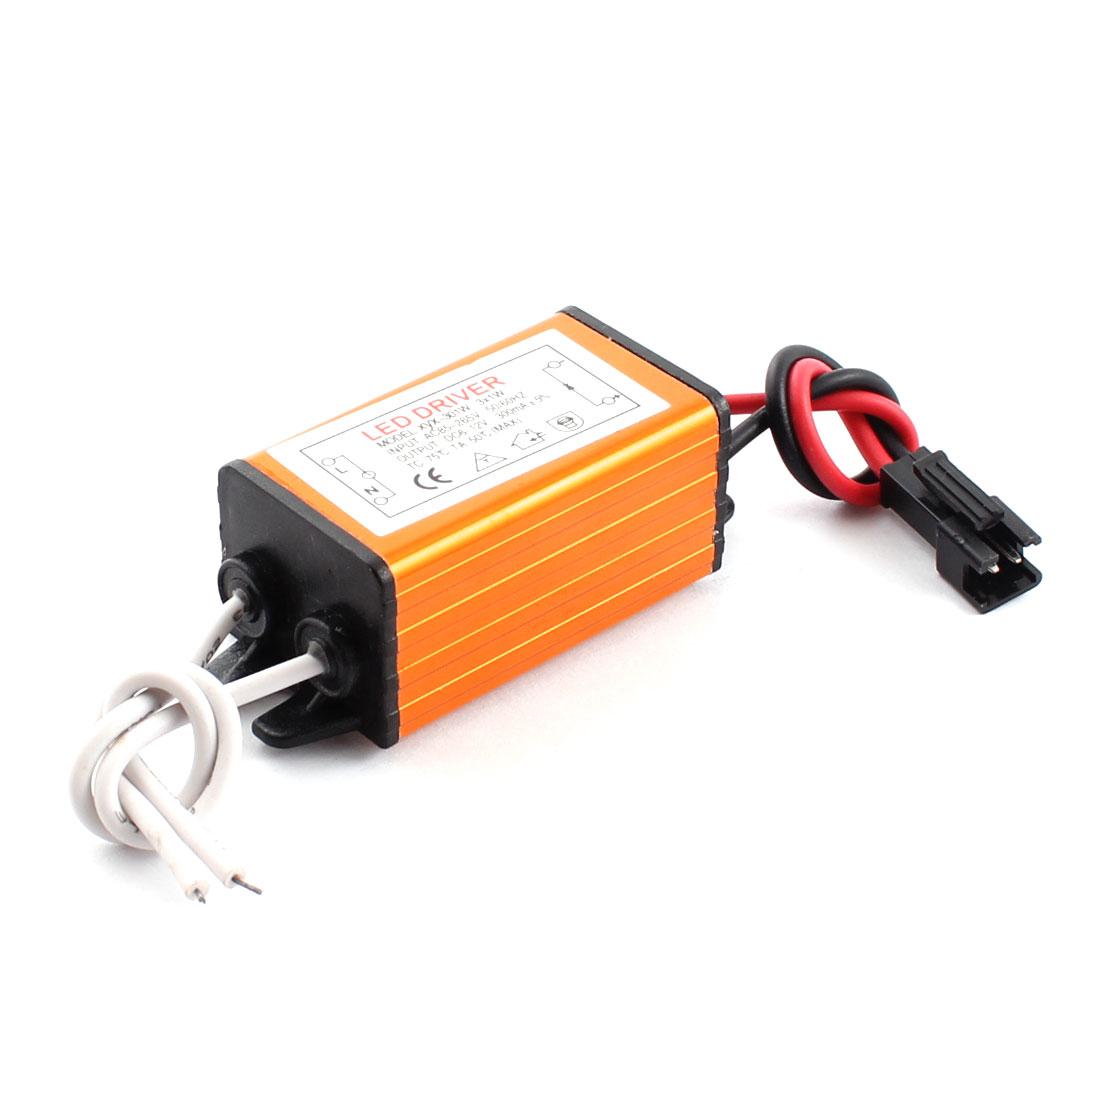 AC 85-265V to DC 6-12V 300mA 3x1W Waterproof Aluminum LED Light Driver Power Supply Adapter Converter